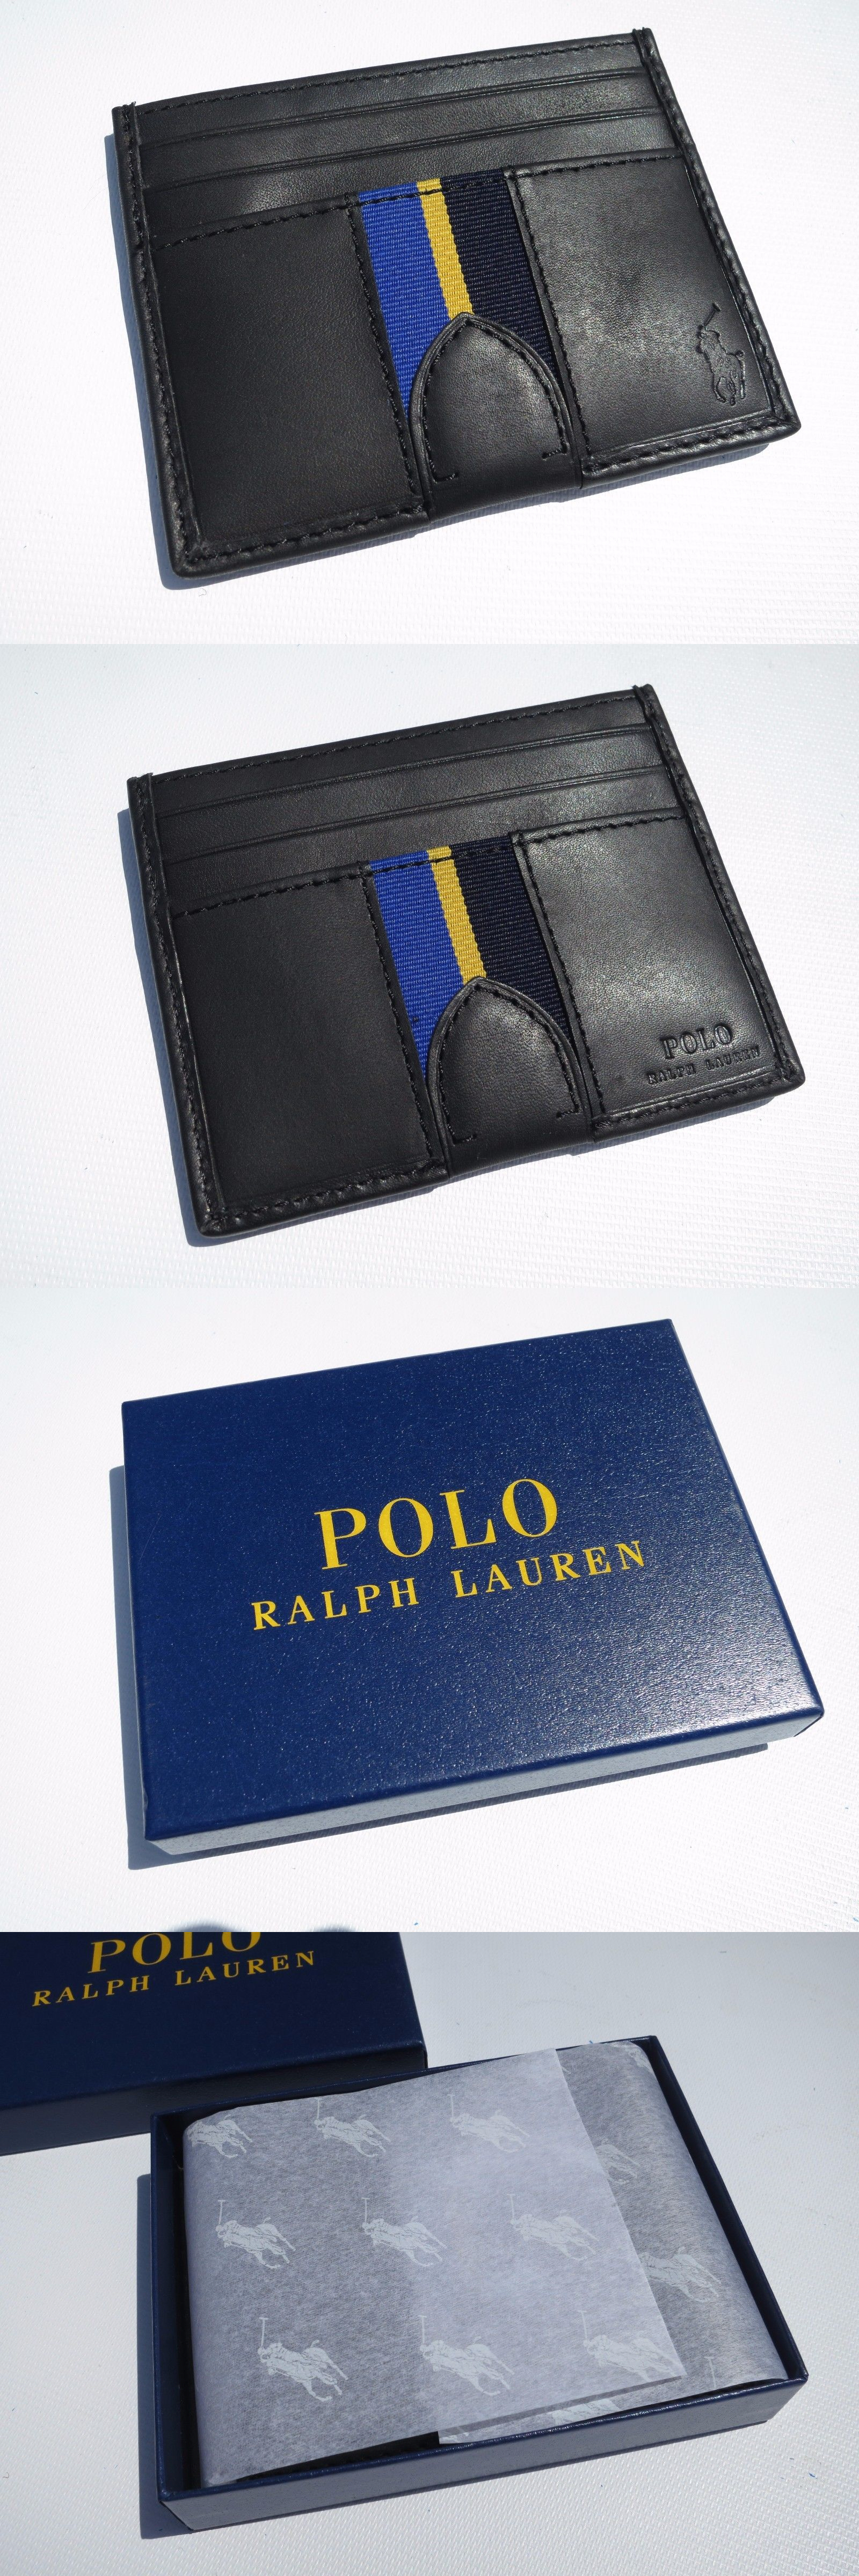 Business and credit card cases 105860 new ralph lauren polo credit business and credit card cases 105860 new ralph lauren polo credit card id case reheart Images